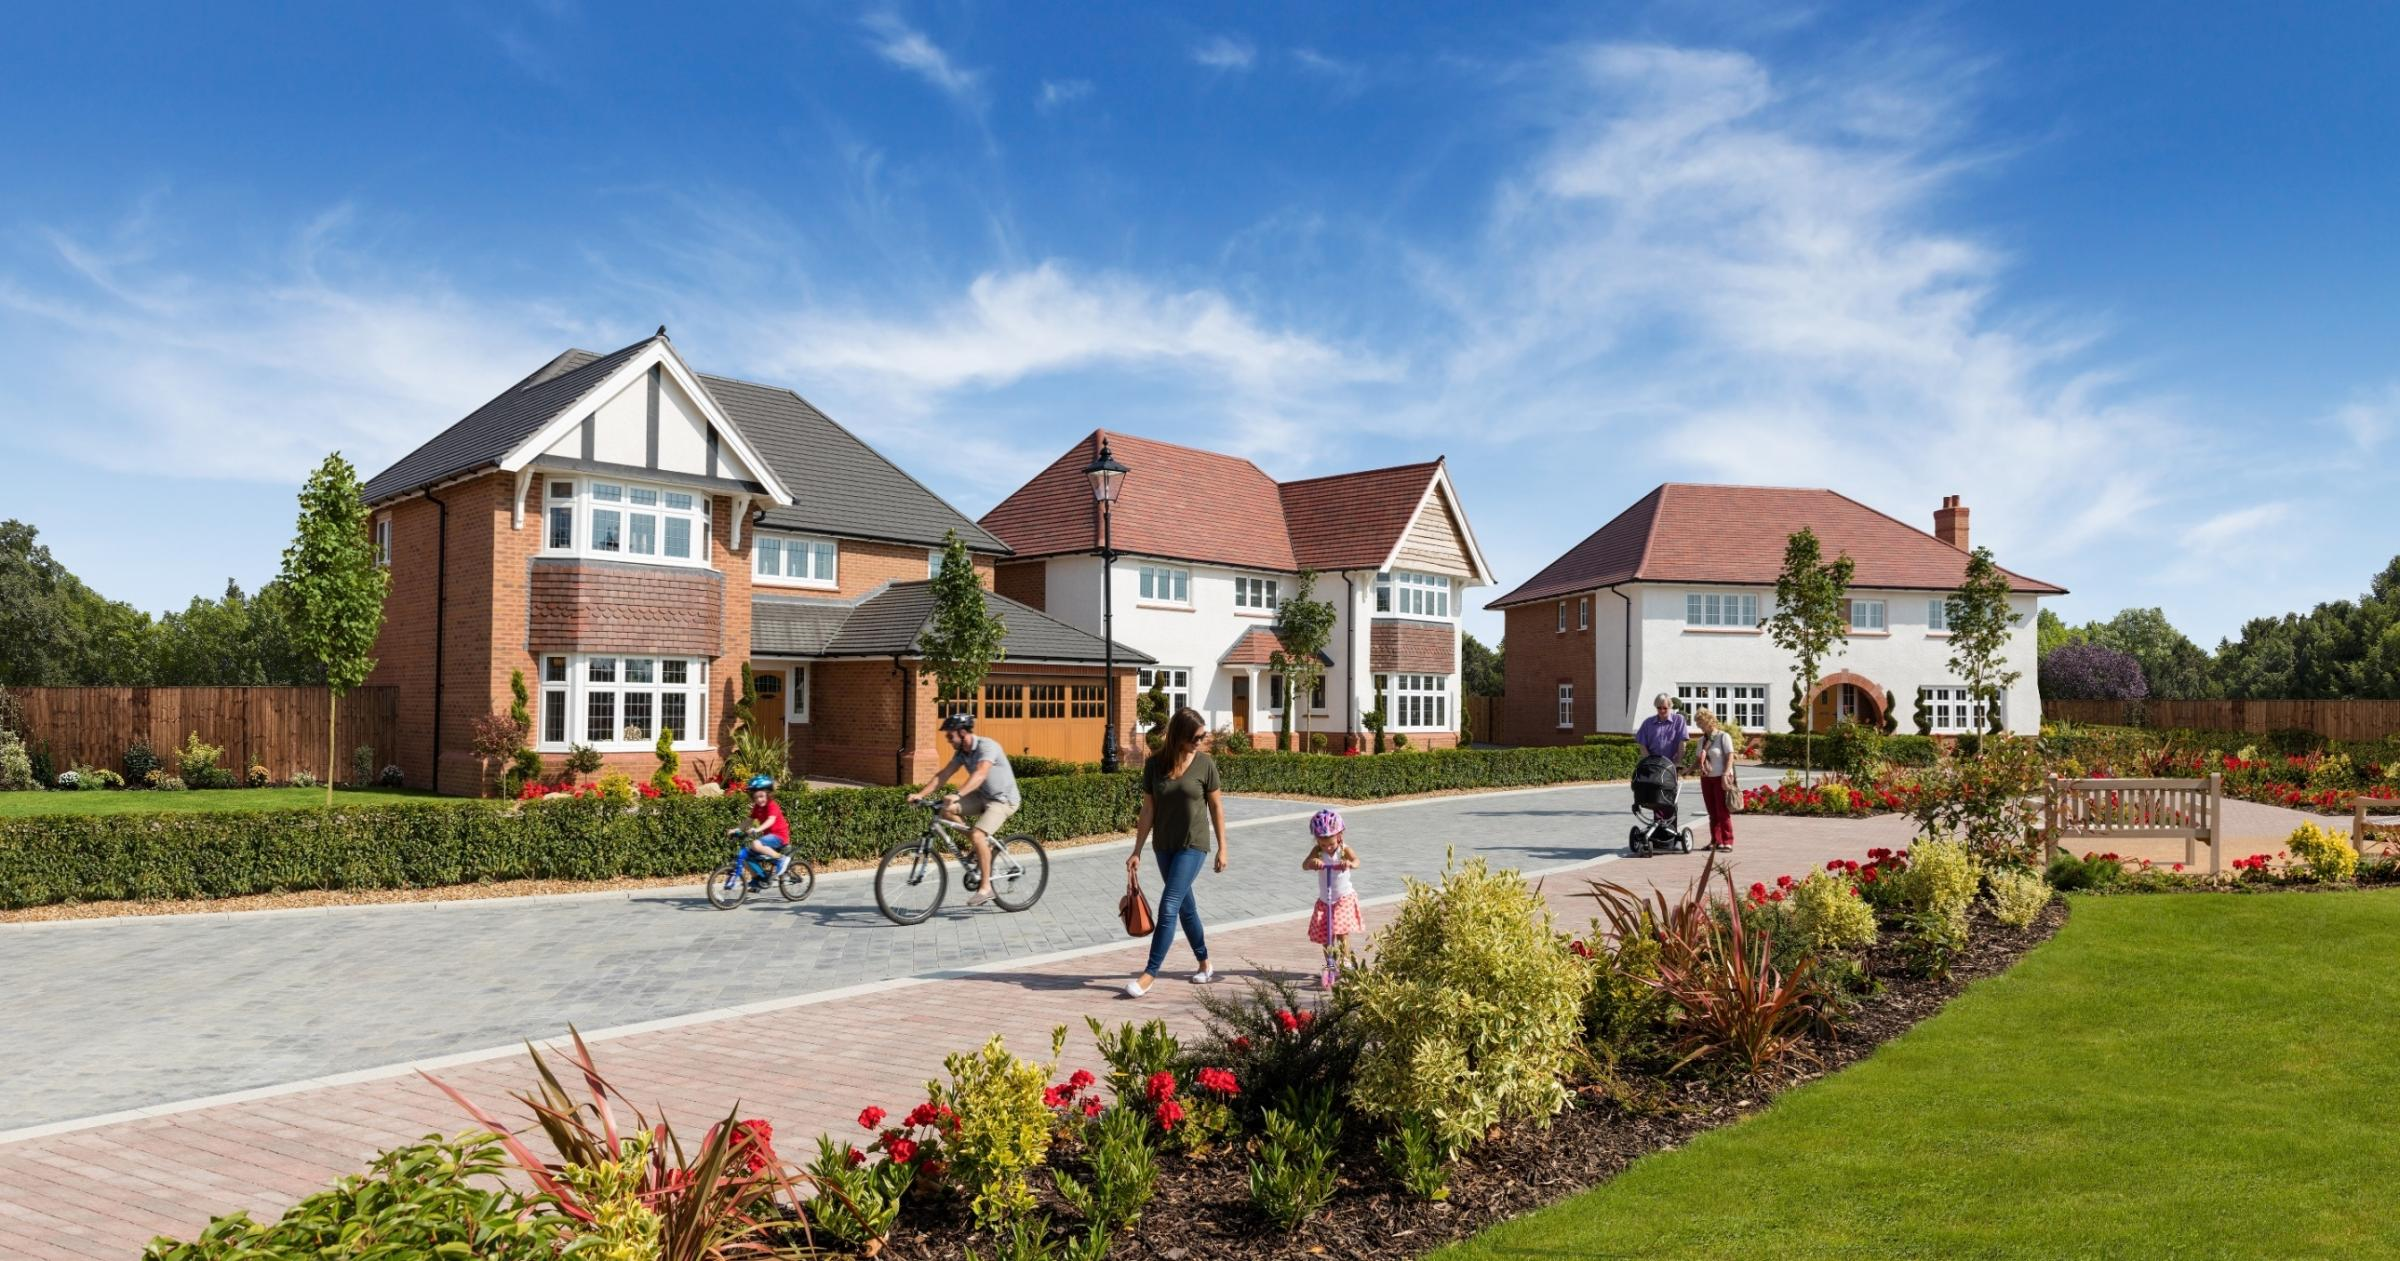 LAND ROW: An image of a Redrow development, in the style of the proposed new village near Monks Cross